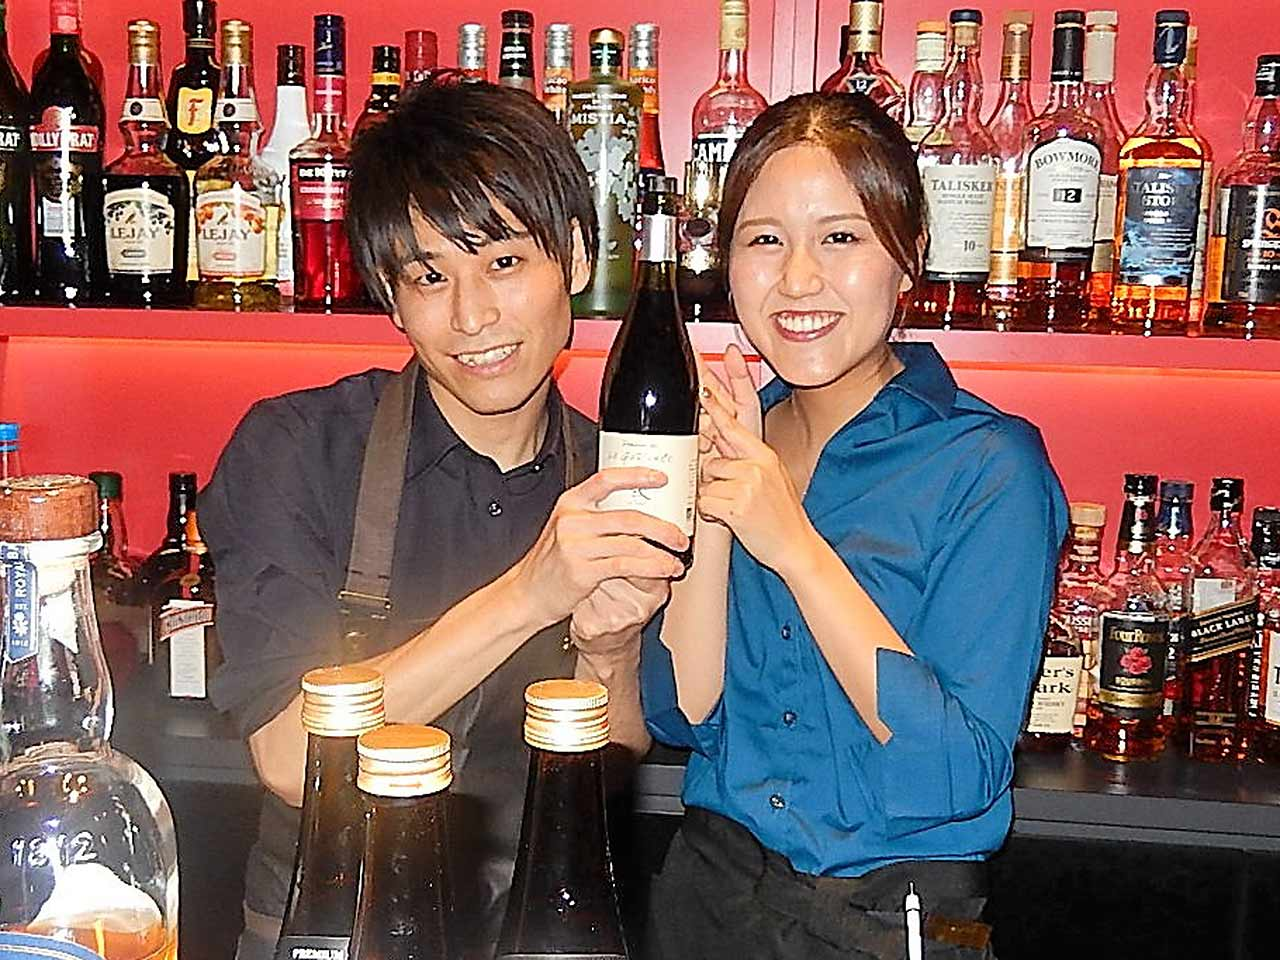 Cafe & Bar15(フィフティーン)阪神西梅田の画像・写真